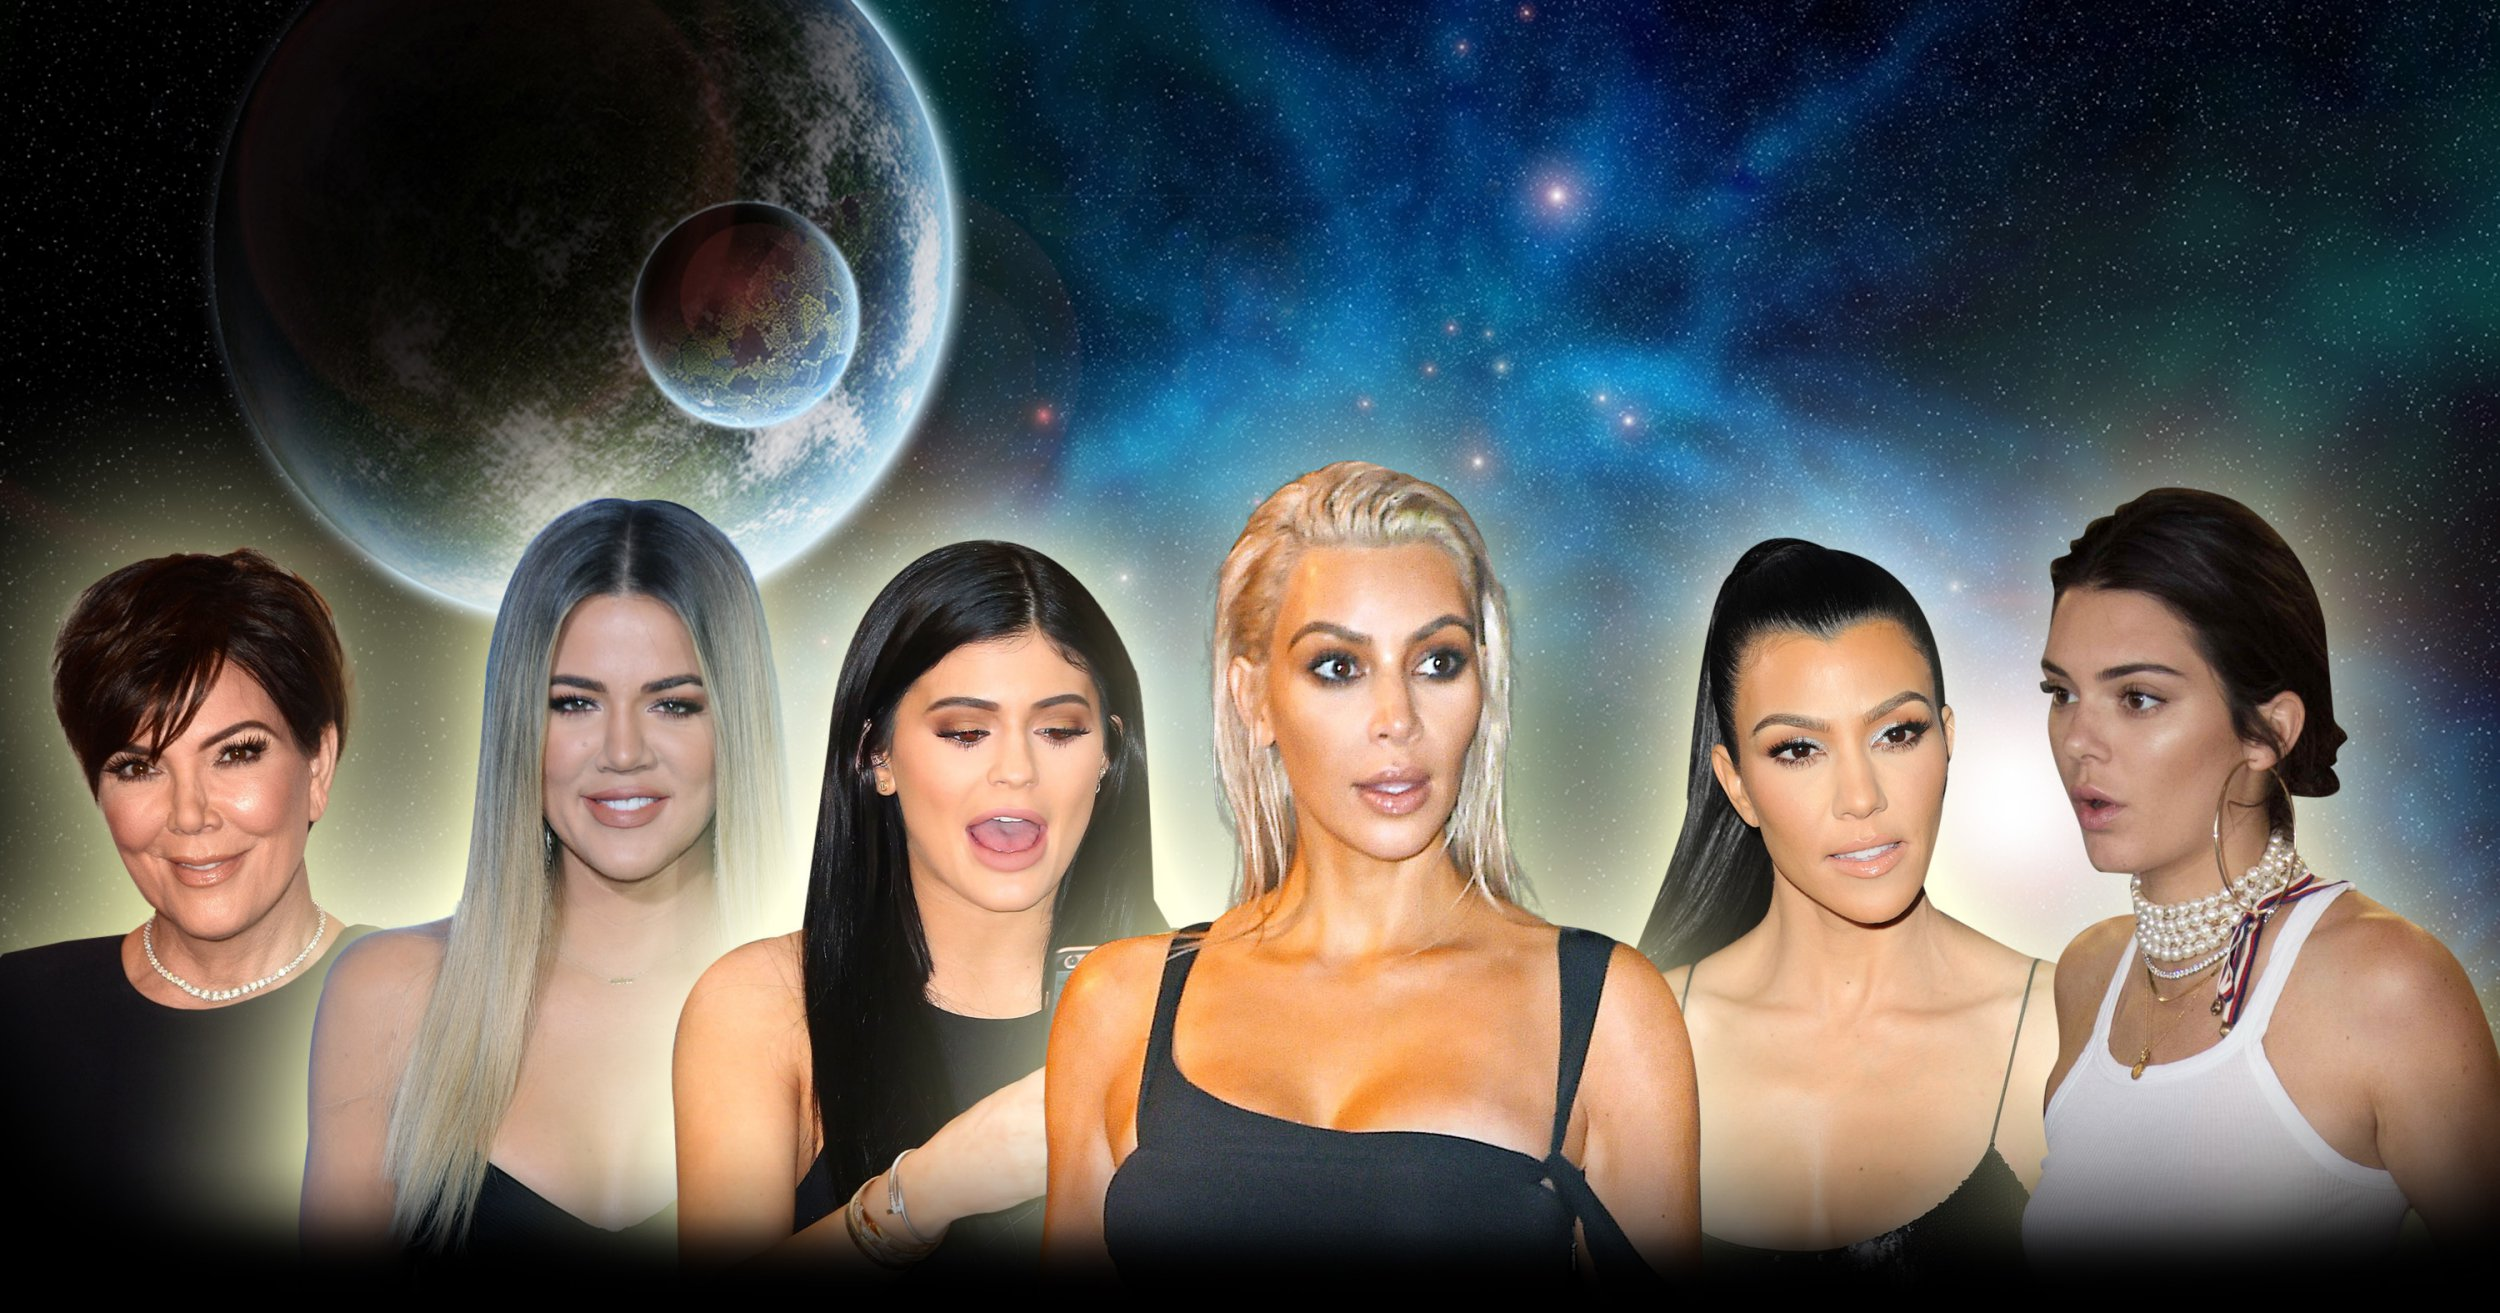 Keeping Up With The Kardashians will film in outer space if Kris Jenner gets her way